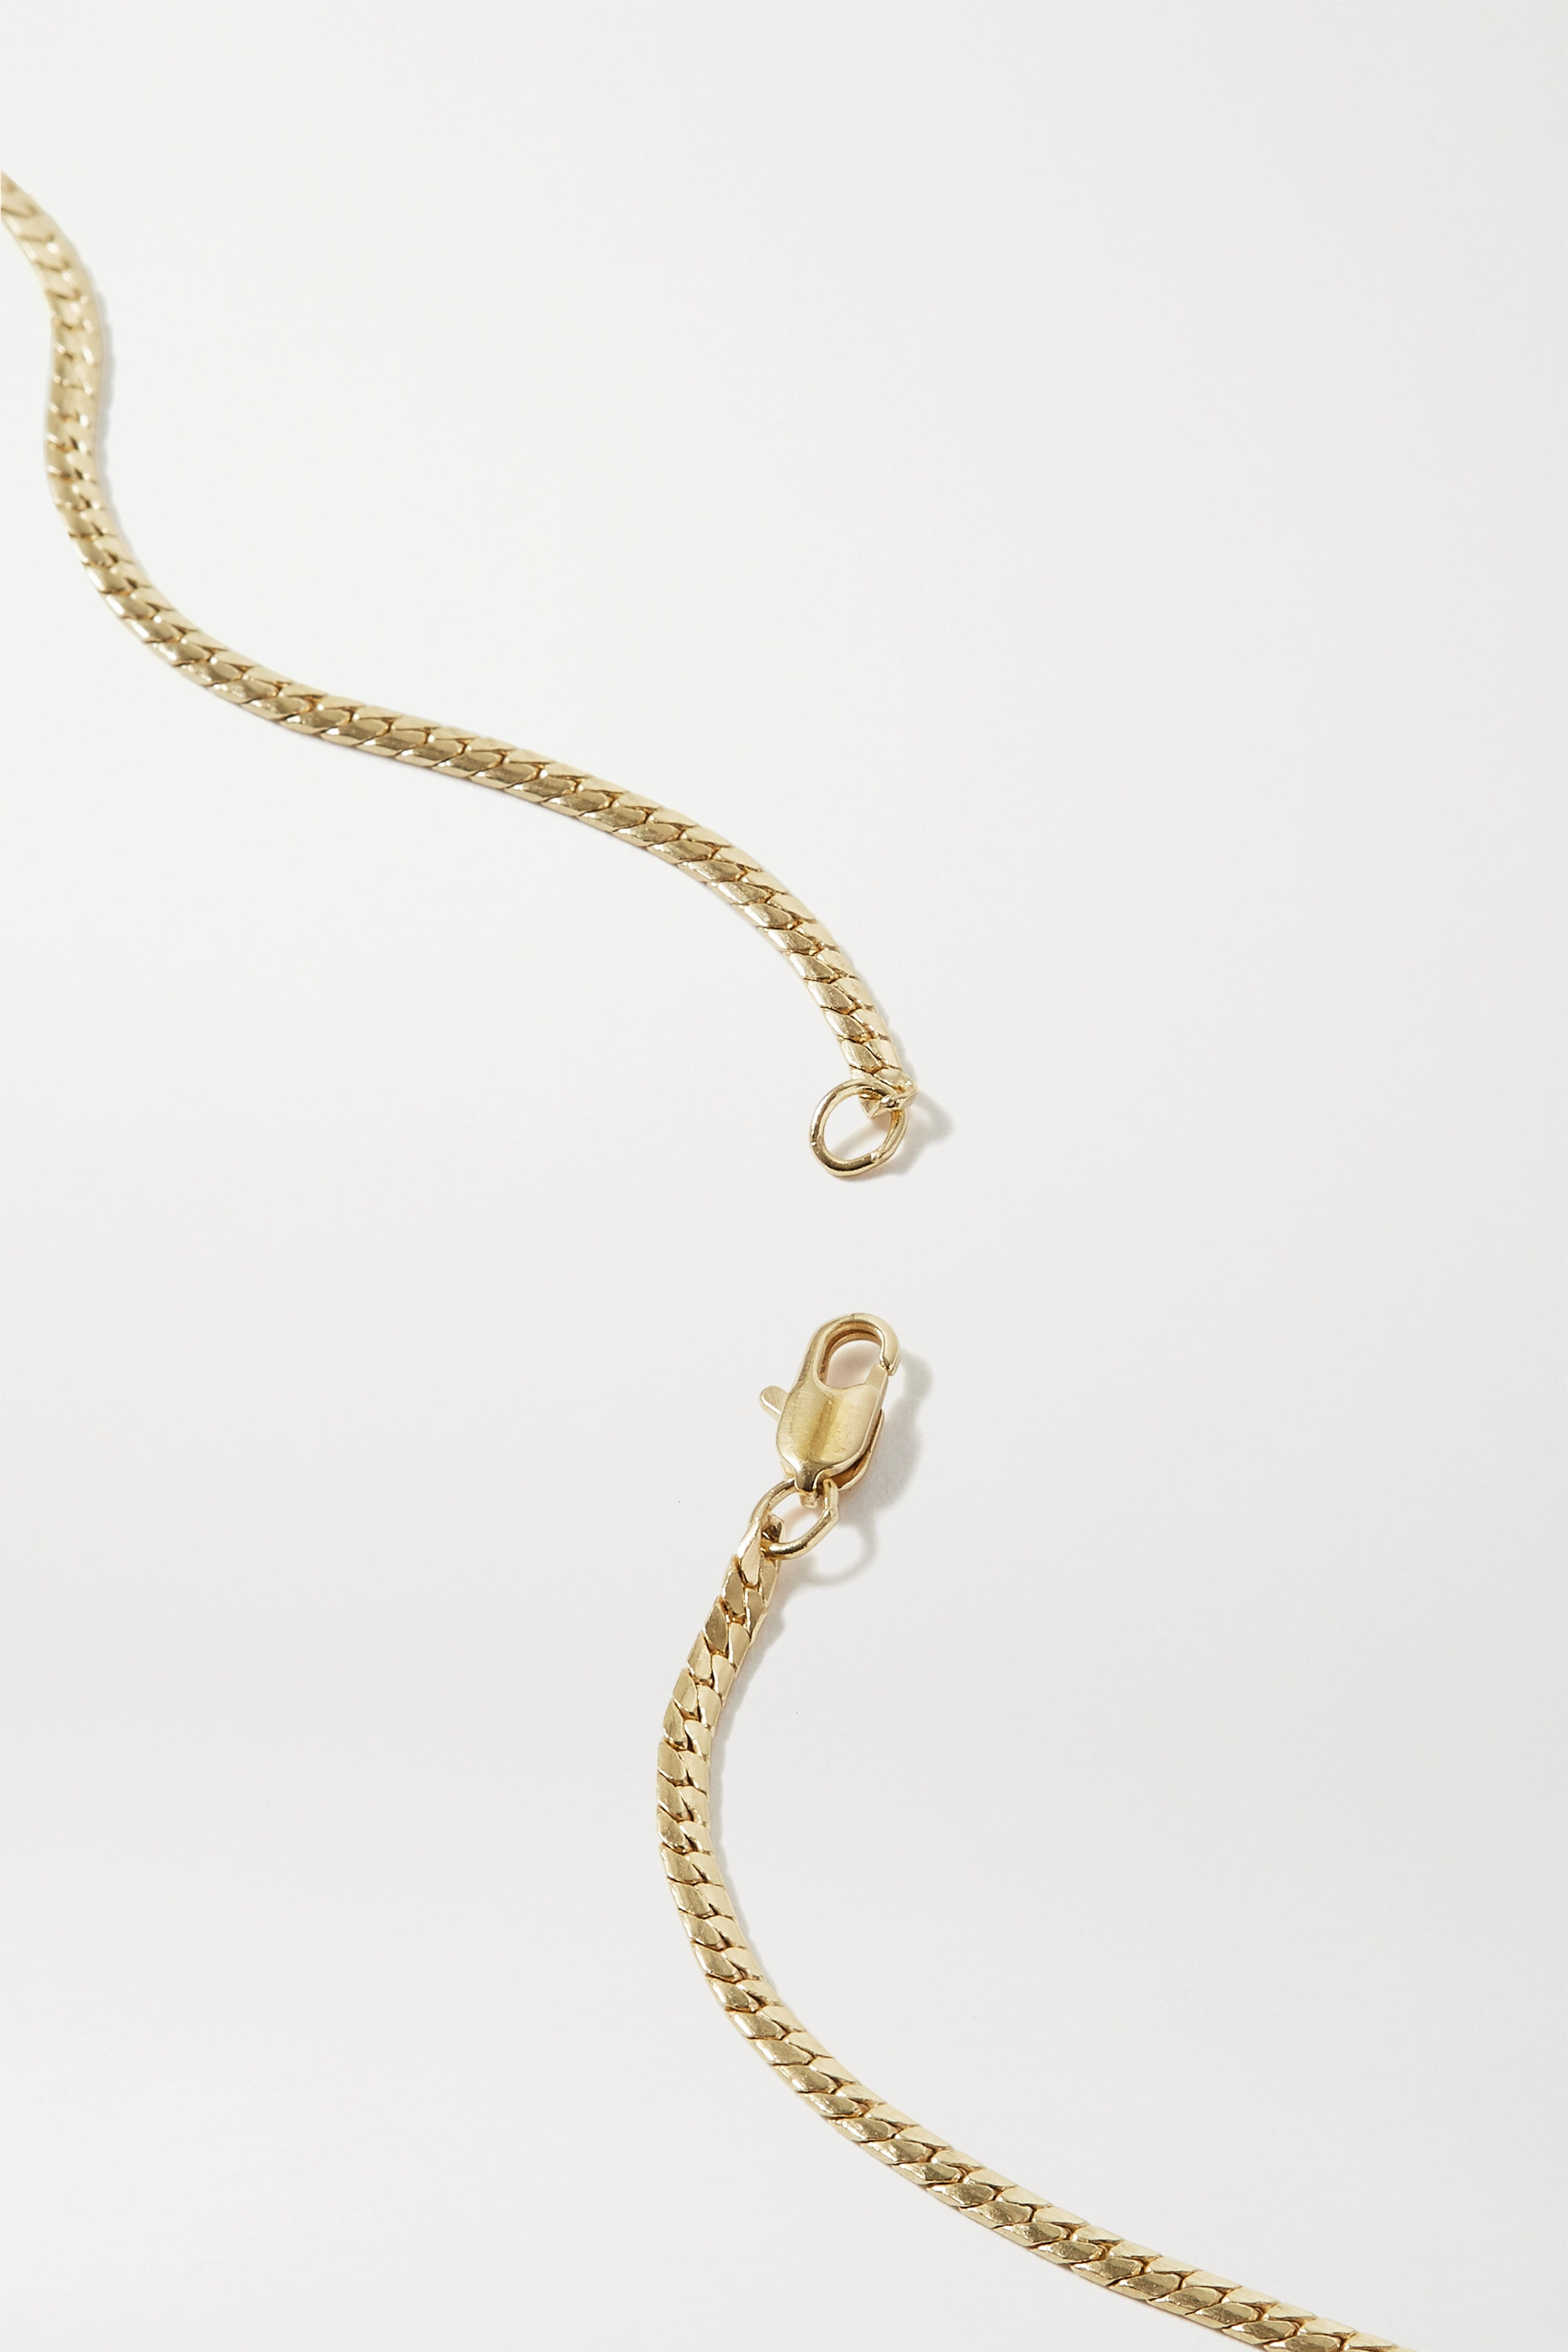 LAURA LOMBARDI Dolce gold-plated necklace